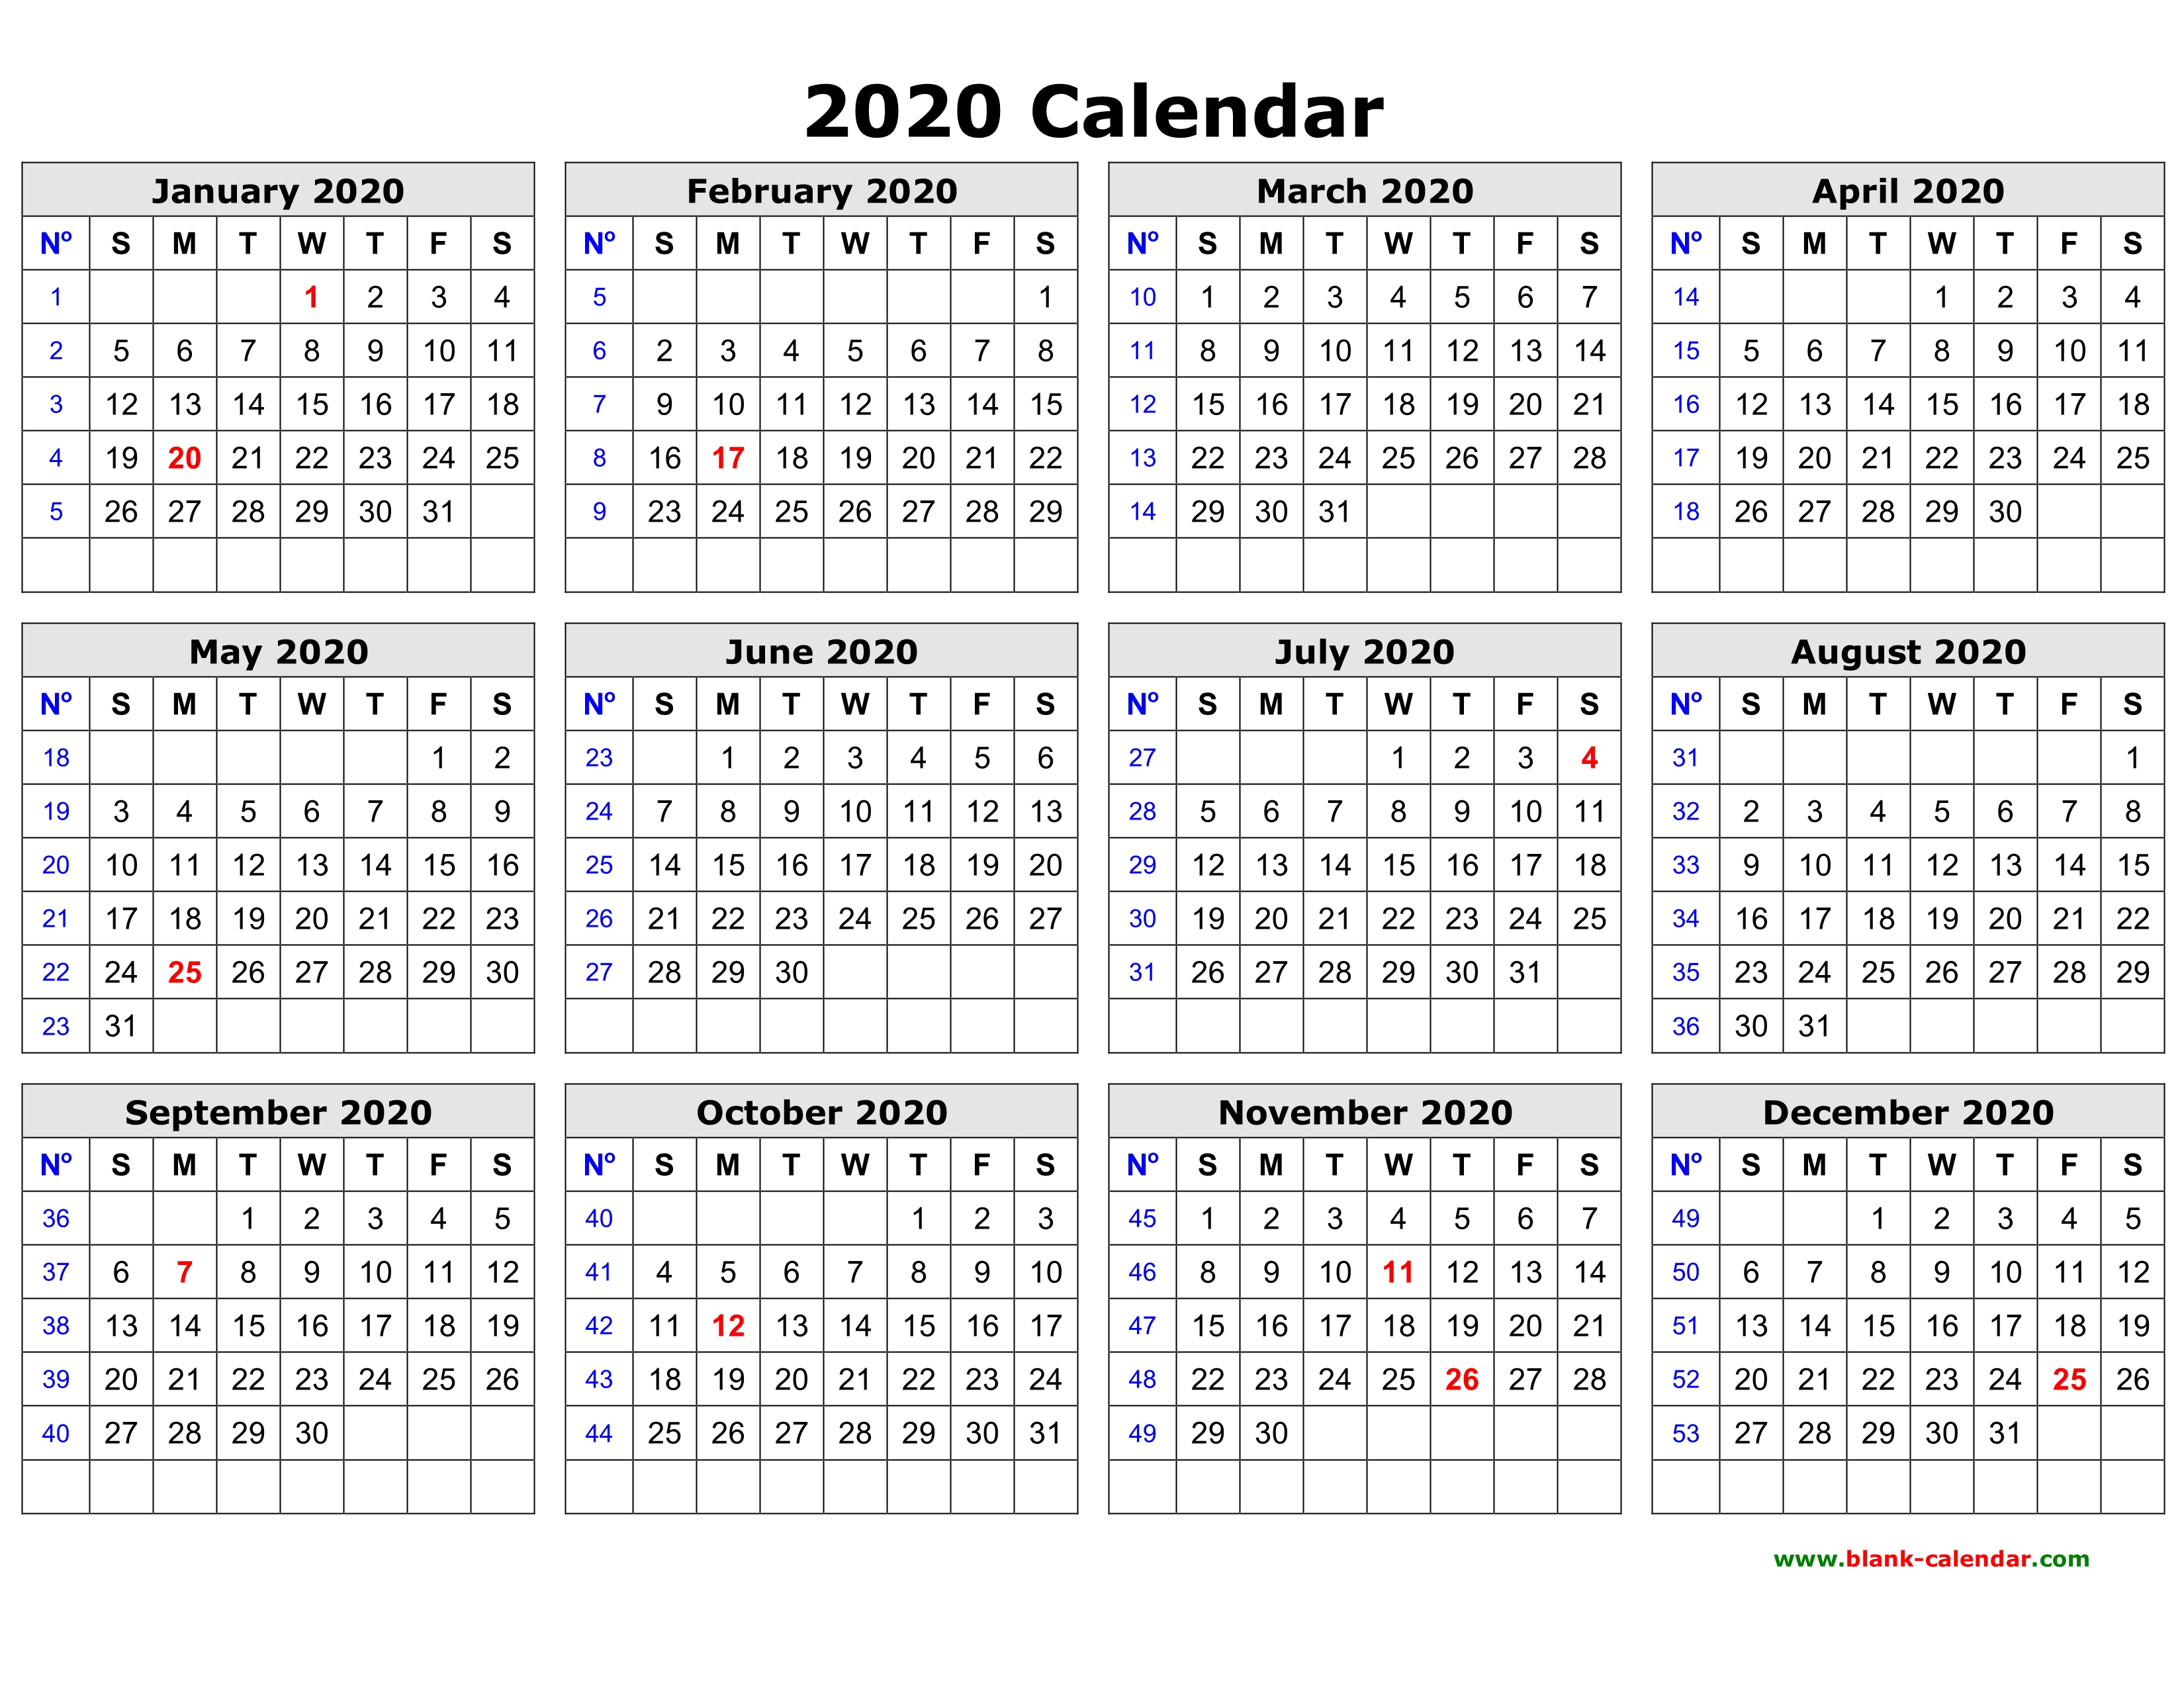 Free Download Printable Calendar 2020 In One Page, Clean Design. regarding 2020 Calendar Printable Free With Added Oicture